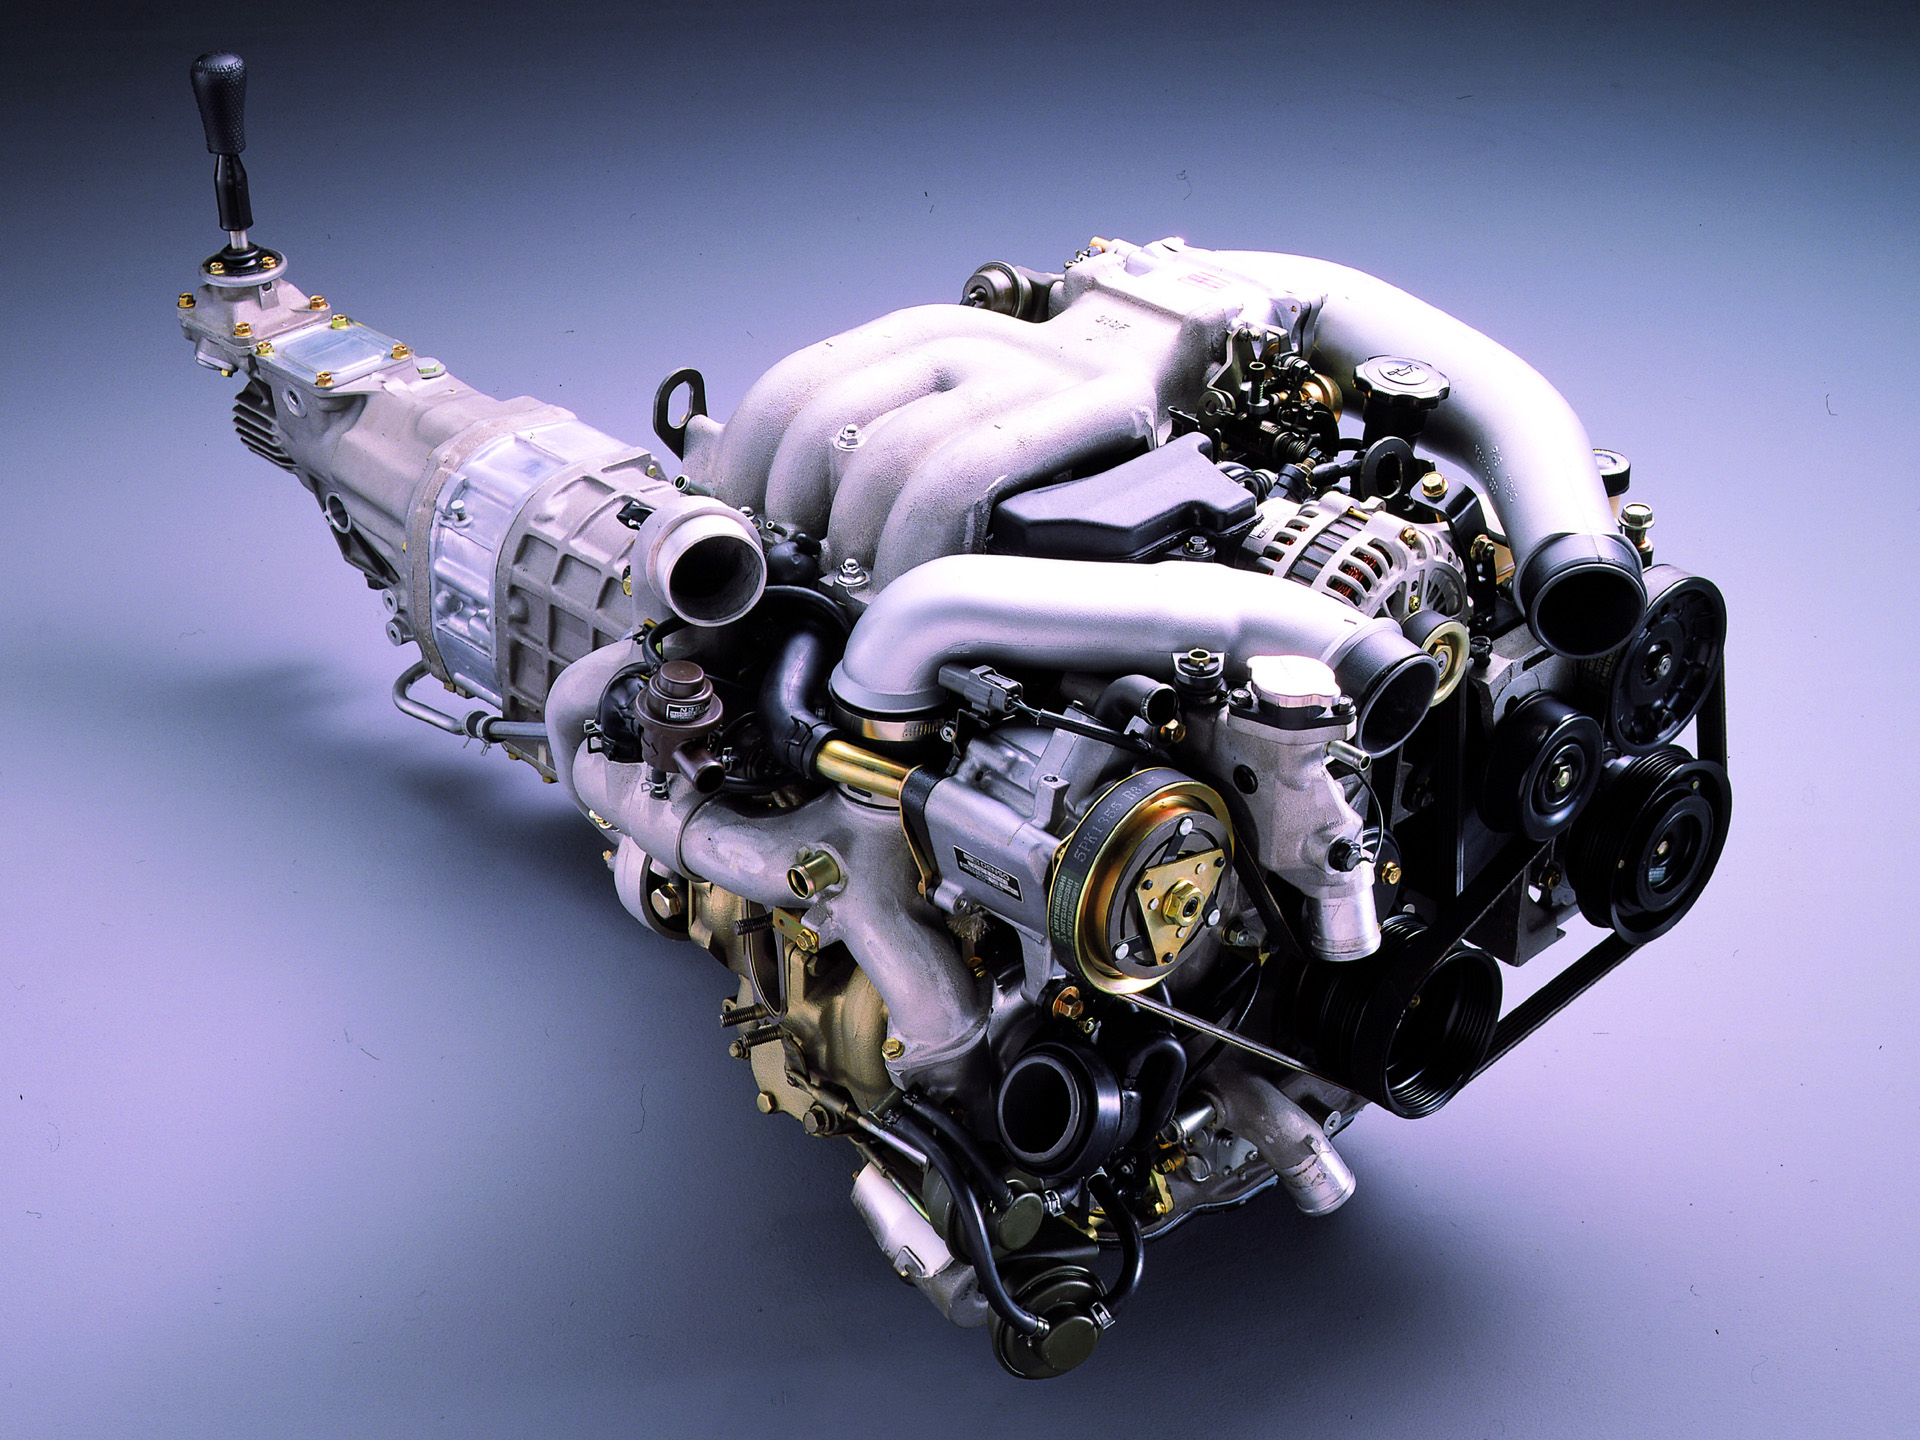 Motor Wankel RE13B, do Mazda RX-7